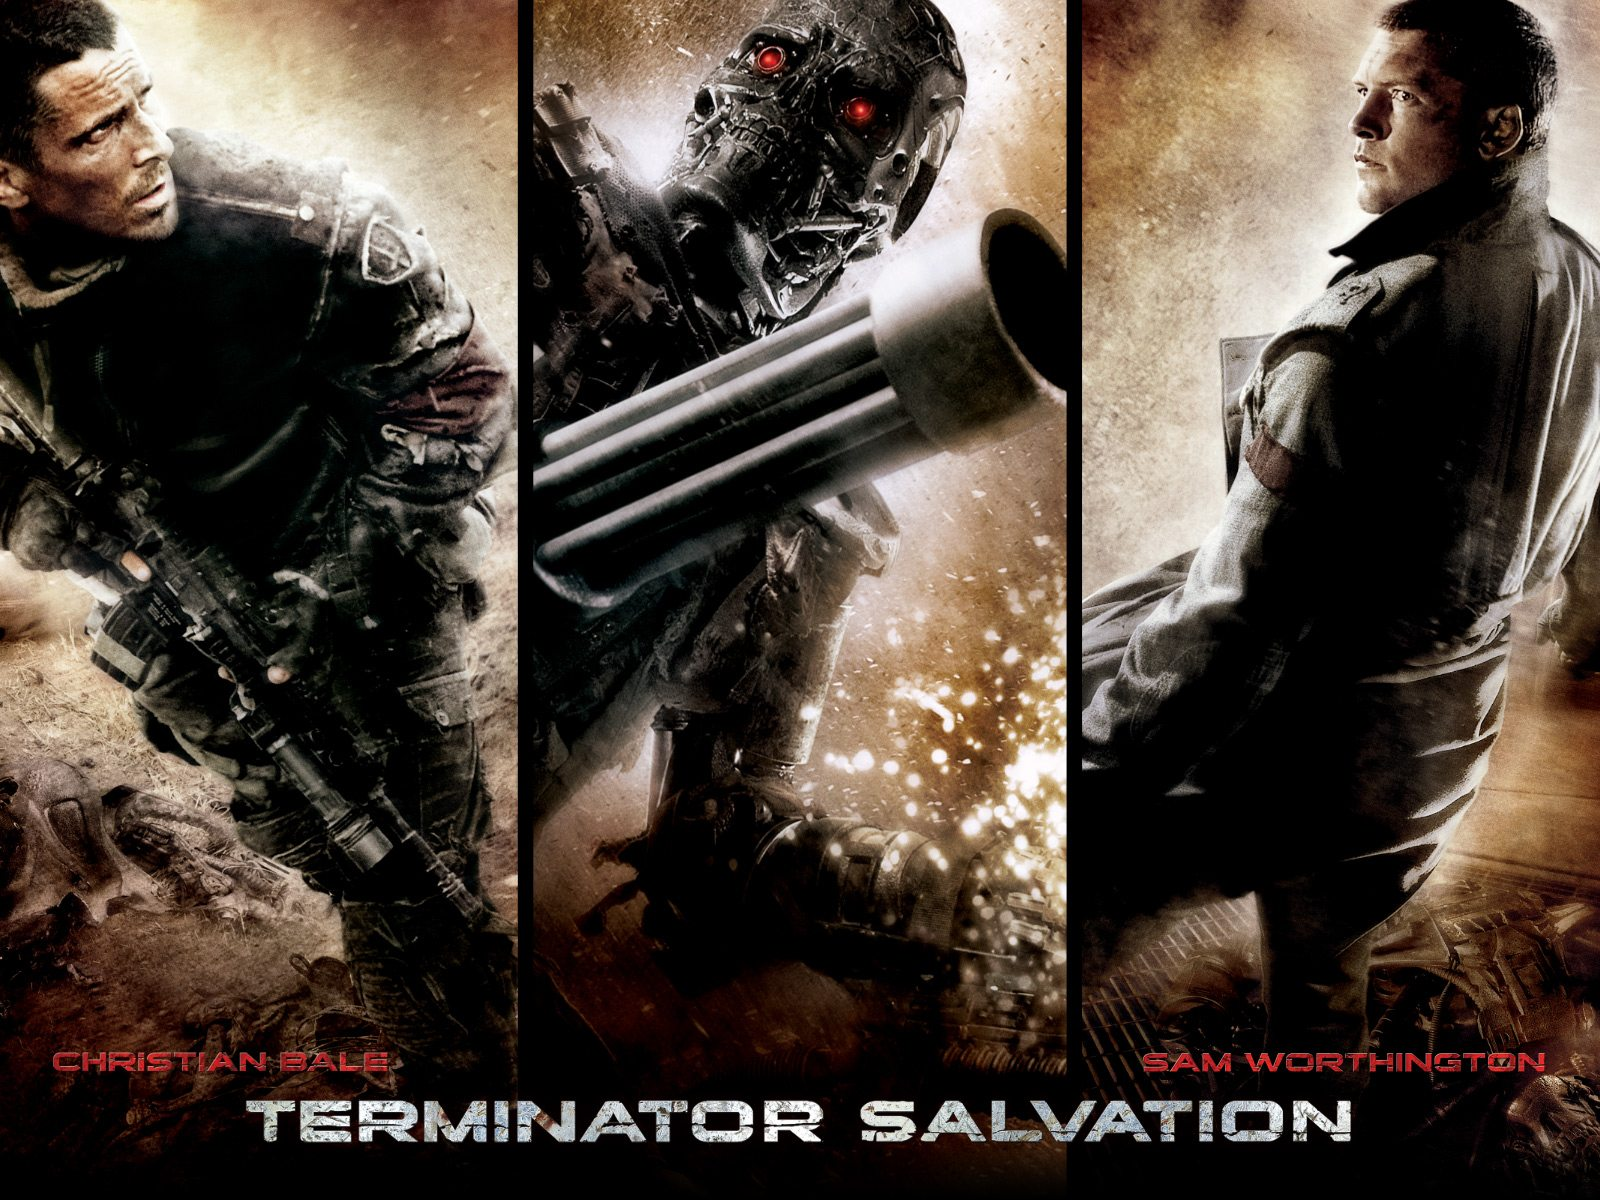 terminator salvation wallpaper hd - photo #1